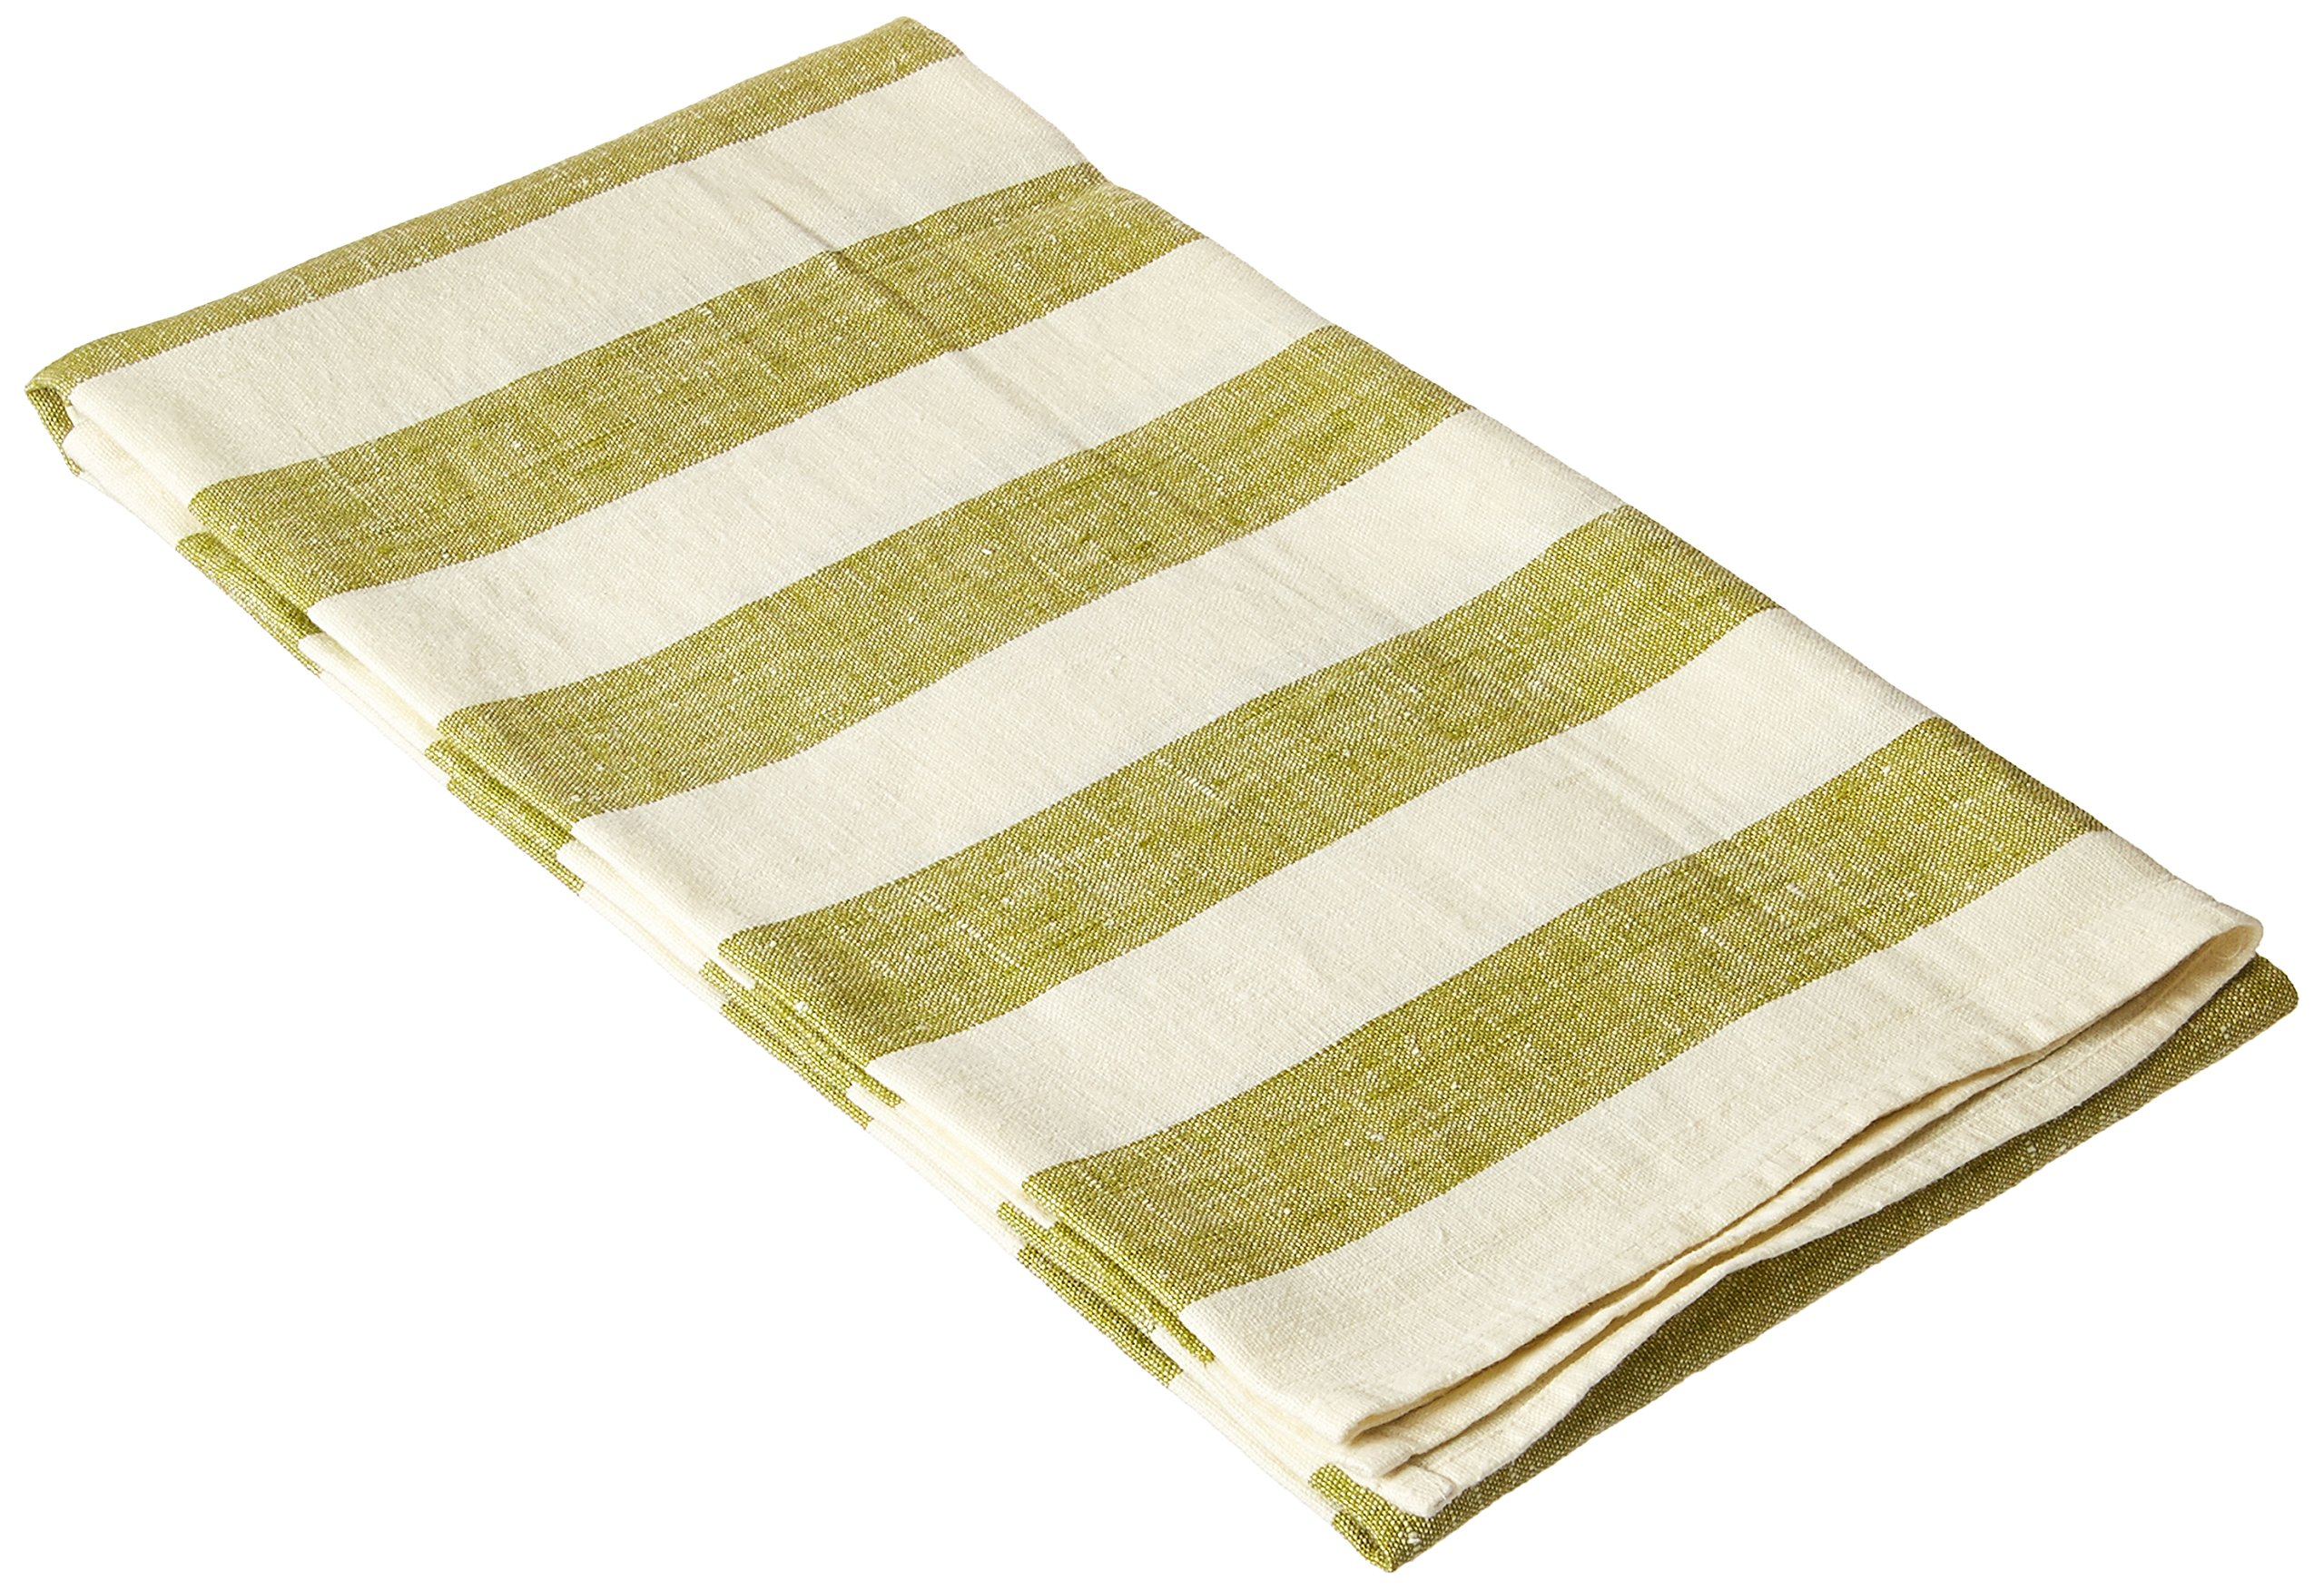 LinenMe Linen Bath Towel, 39 by 55-Inch, Philippe, Green - 100 % Linen Color: OLIVE GREEN Size: 39 by 55-Inch - bathroom-linens, bathroom, bath-towels - 91wRynu1QPL -